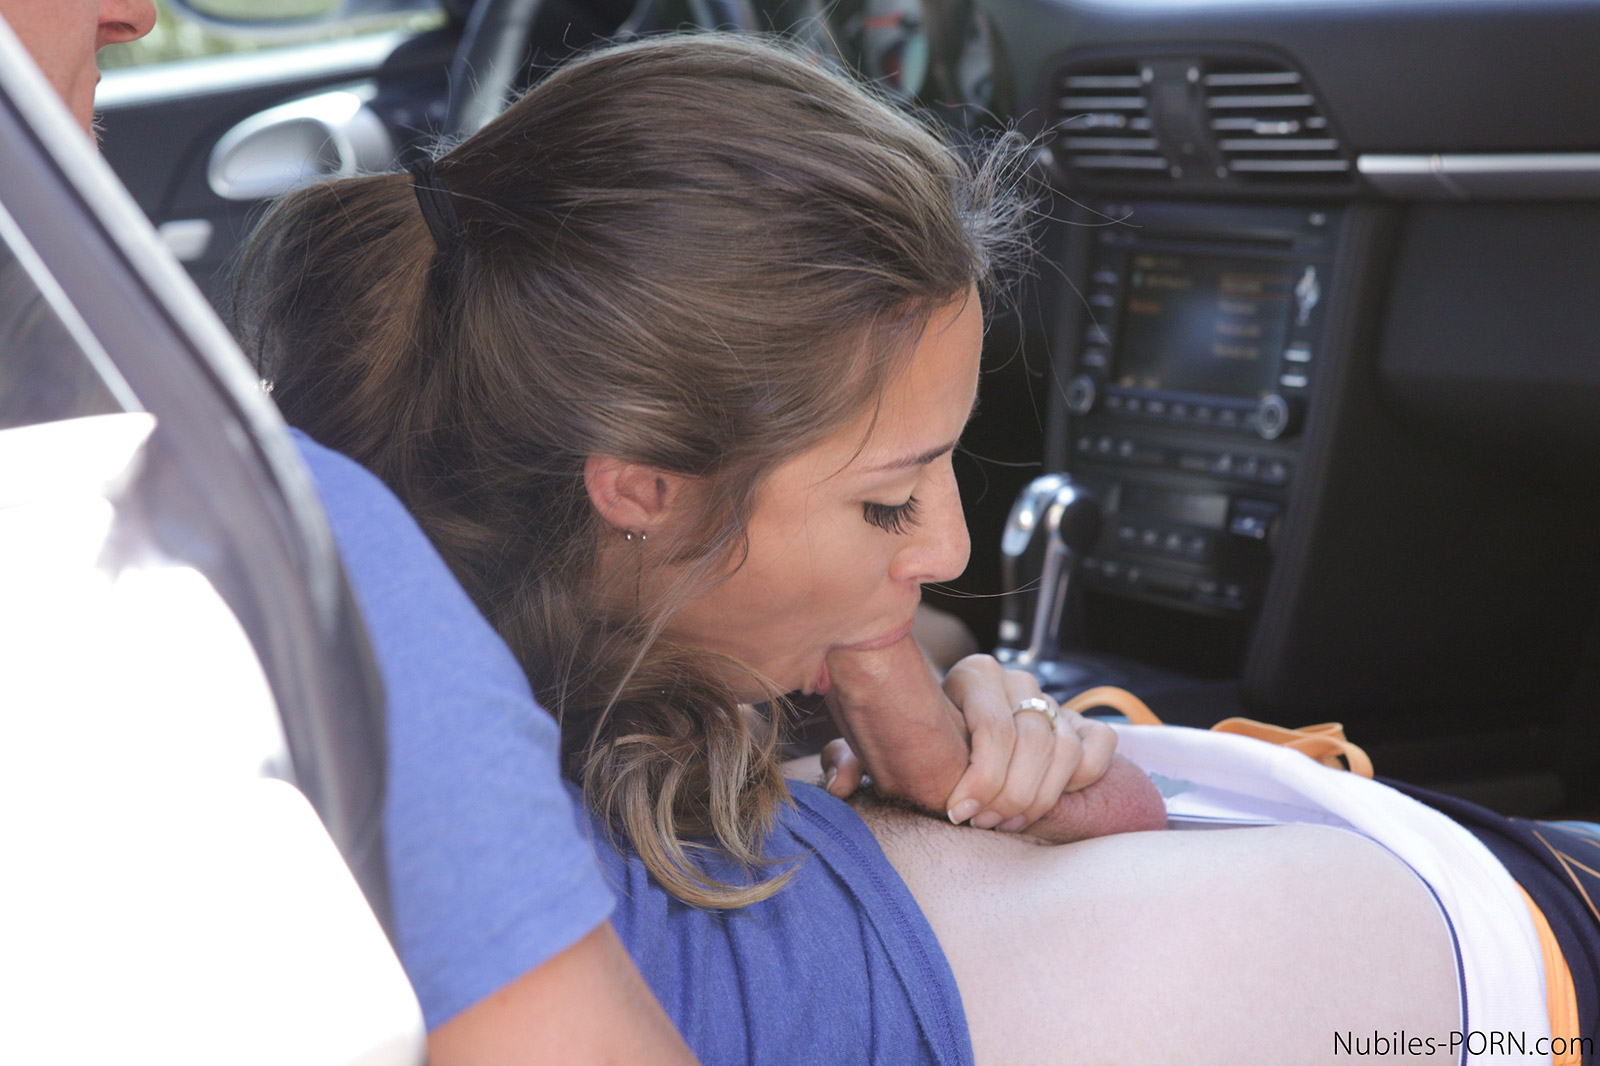 Every day she gives a blowjob in the car and swallows cum